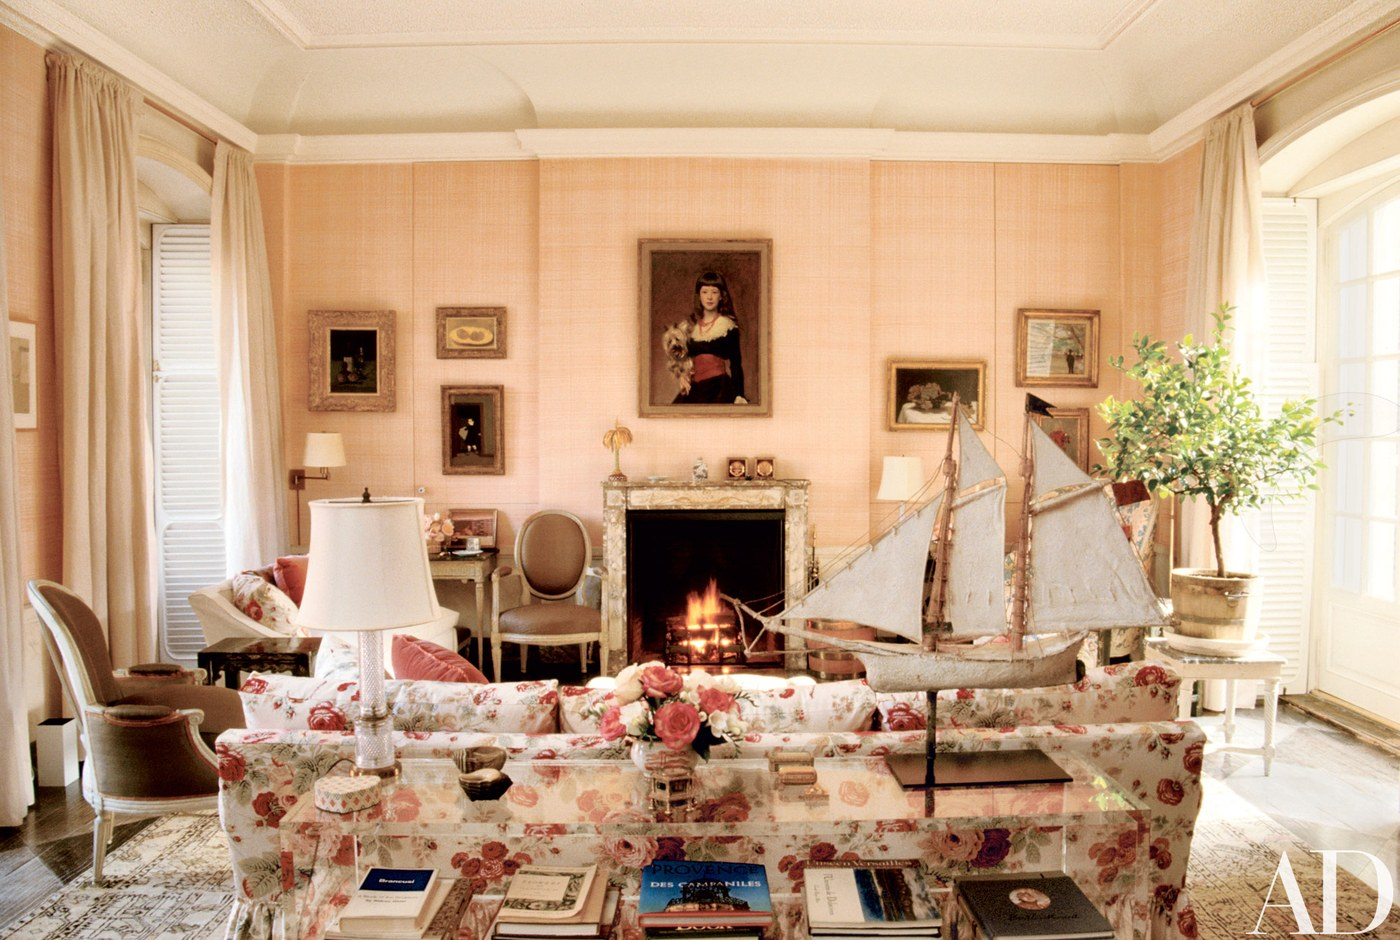 The pink living room of American heiress and art collector Bunny Mellon's Manhattan residence gets us every time, no matter how many times we've seen it. The designer's entire Manhattan home is a perfectly medley of chintz and good taste, latticework, trelliage and wicker, crown mouldings and artwork, including John Singer Sargent (above) and Édouard Manet ...